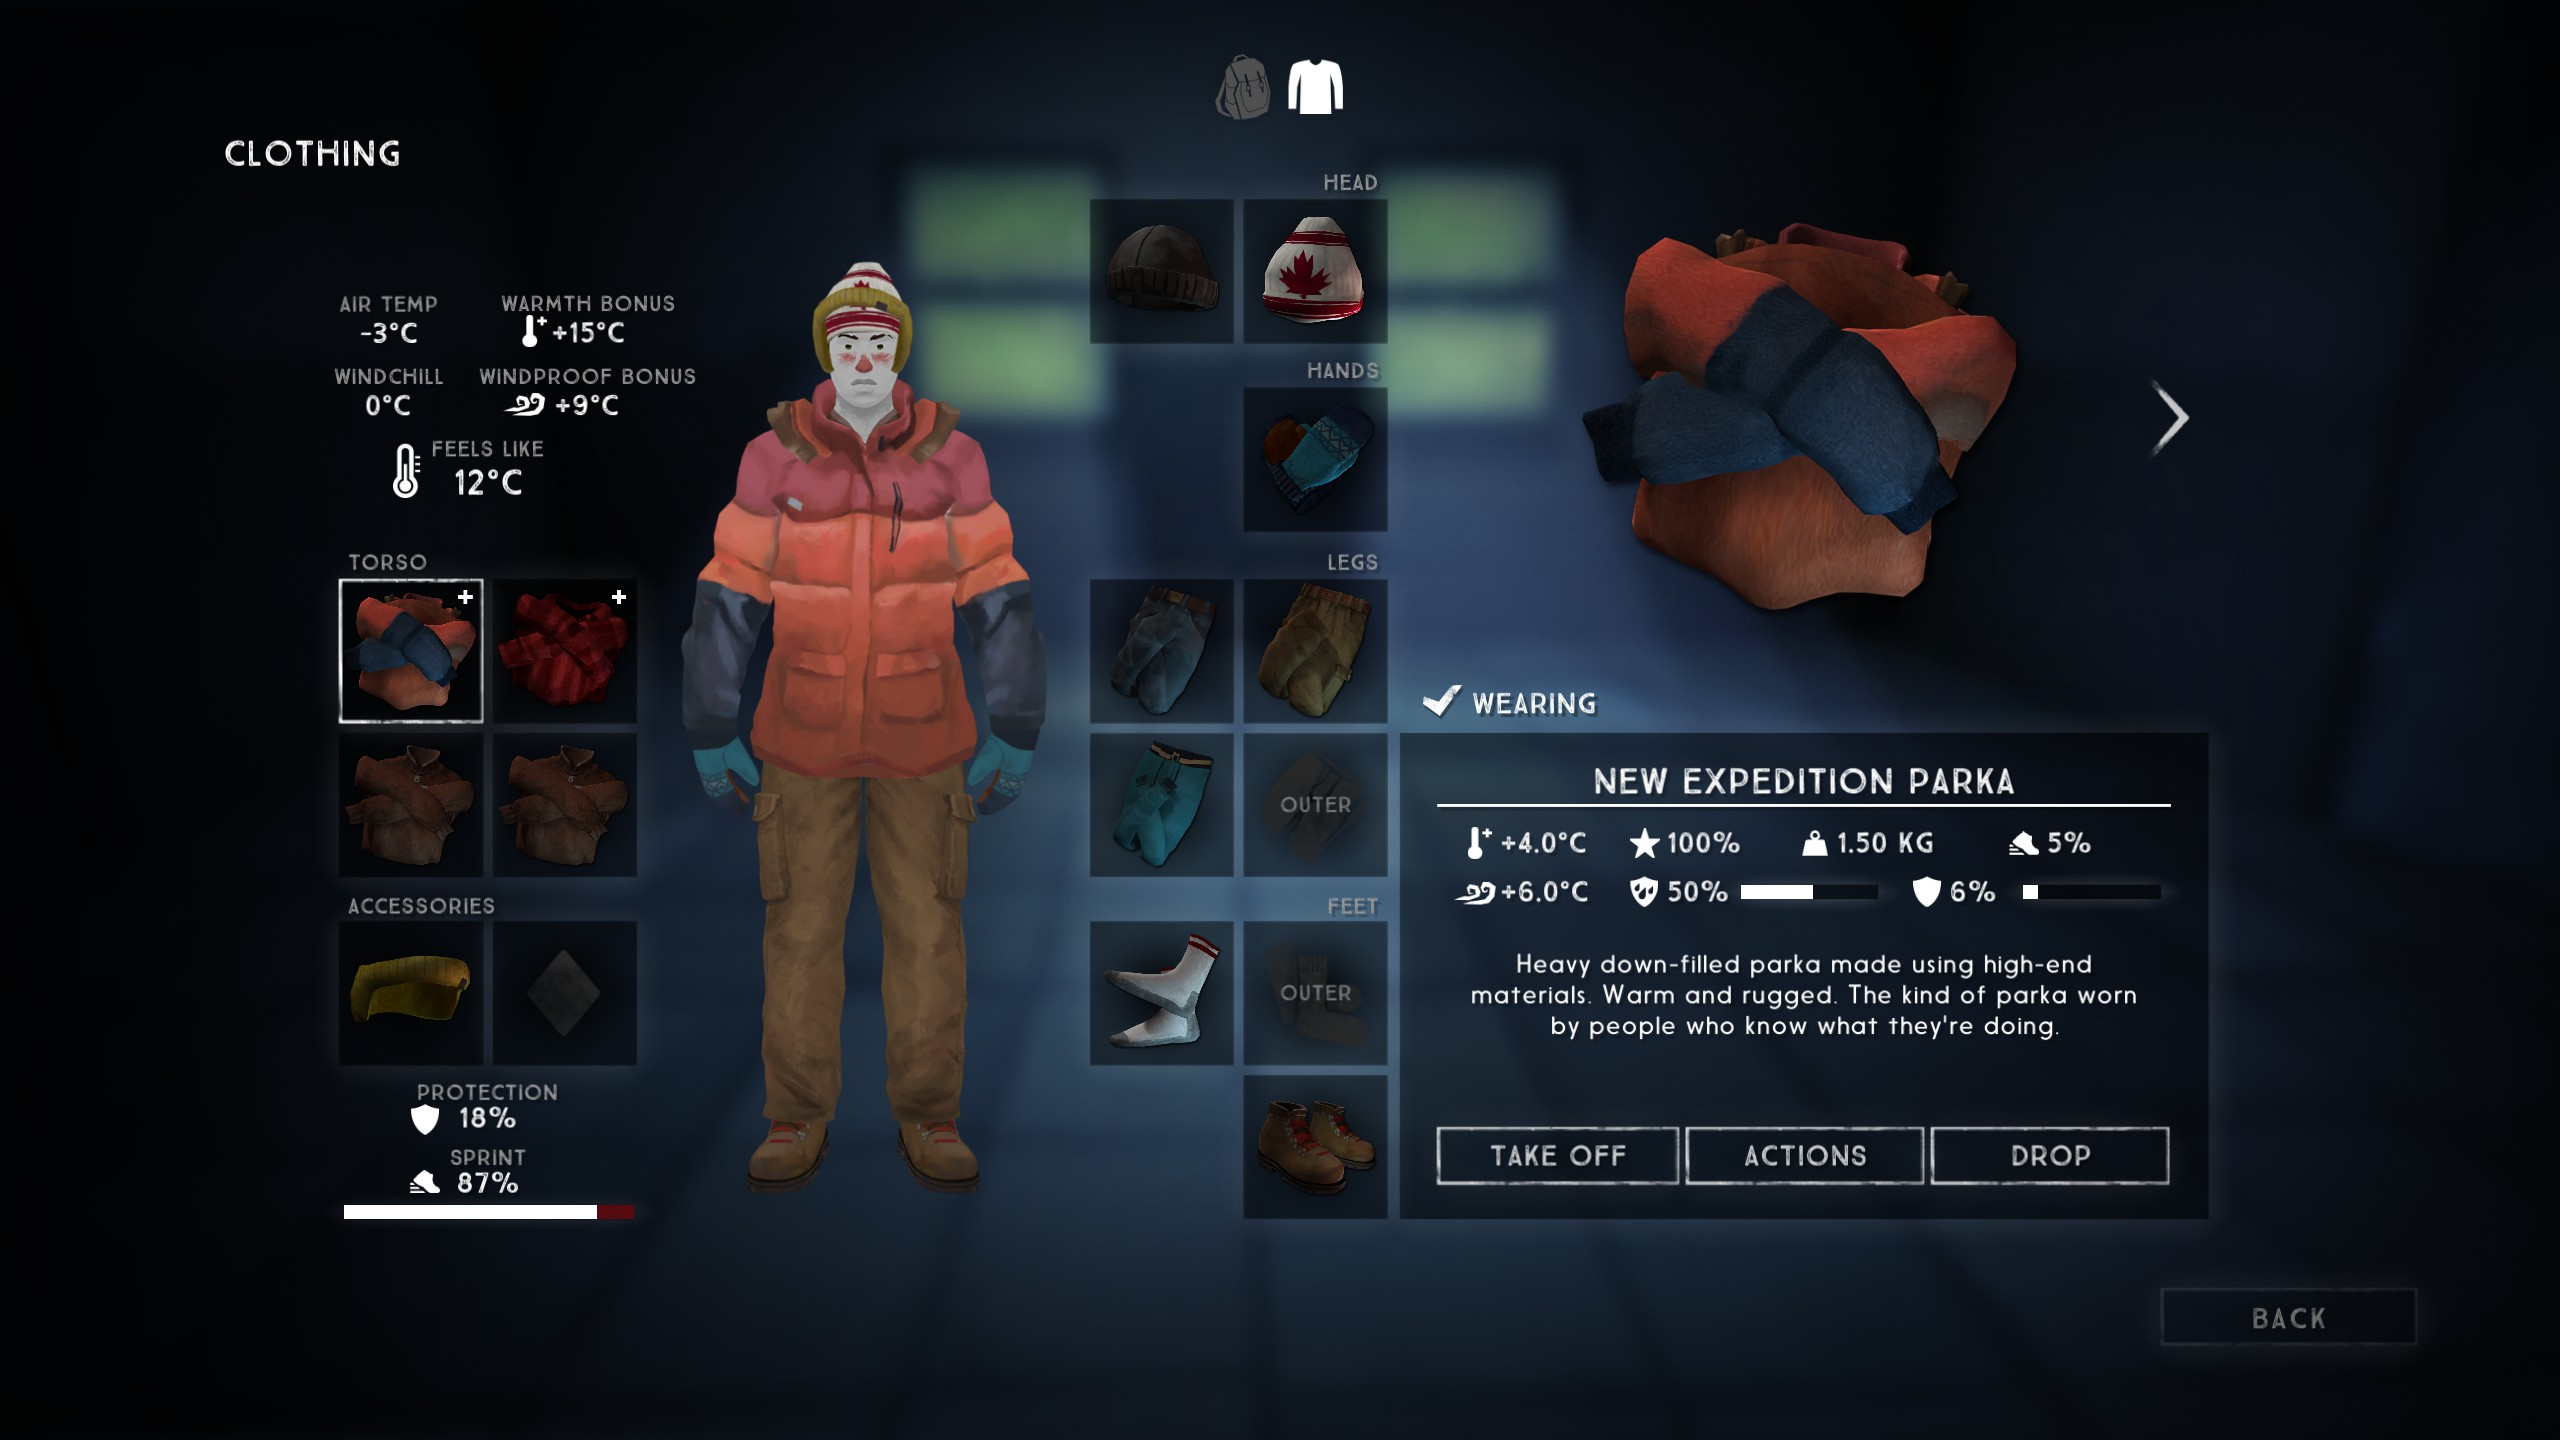 The Expedition Parka is one of the best clothing items in The Long Dark.